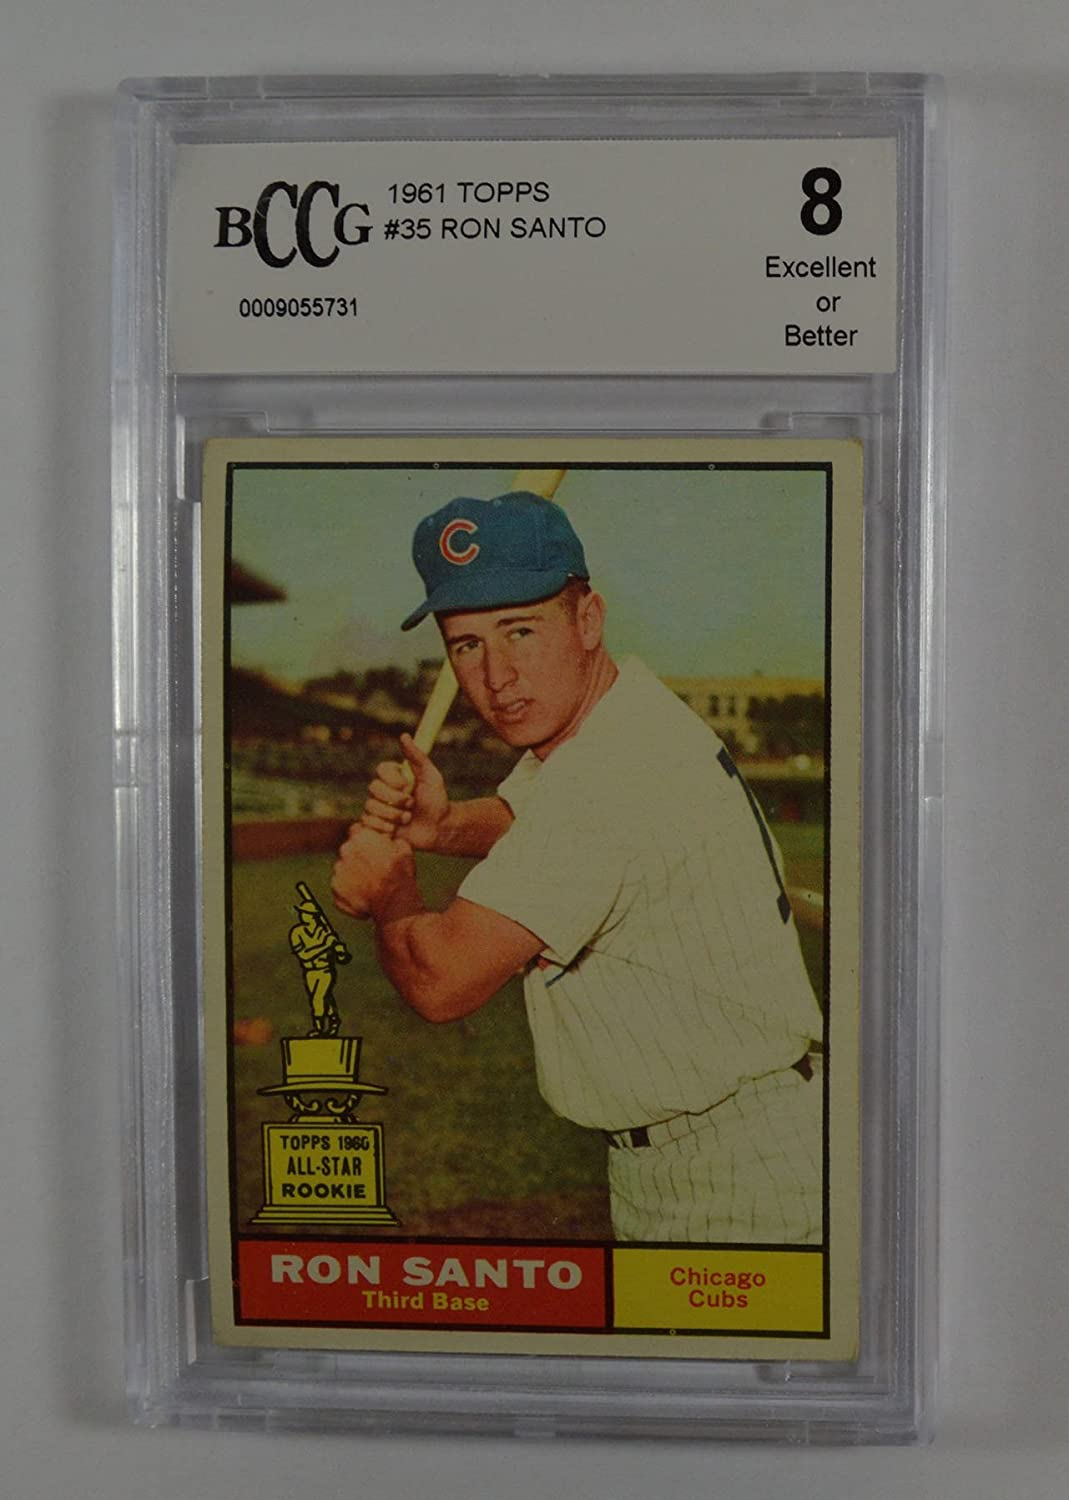 1961 topps #35 RON SANTO chicago cubs rookie card BGS BCCG 8 Graded Card